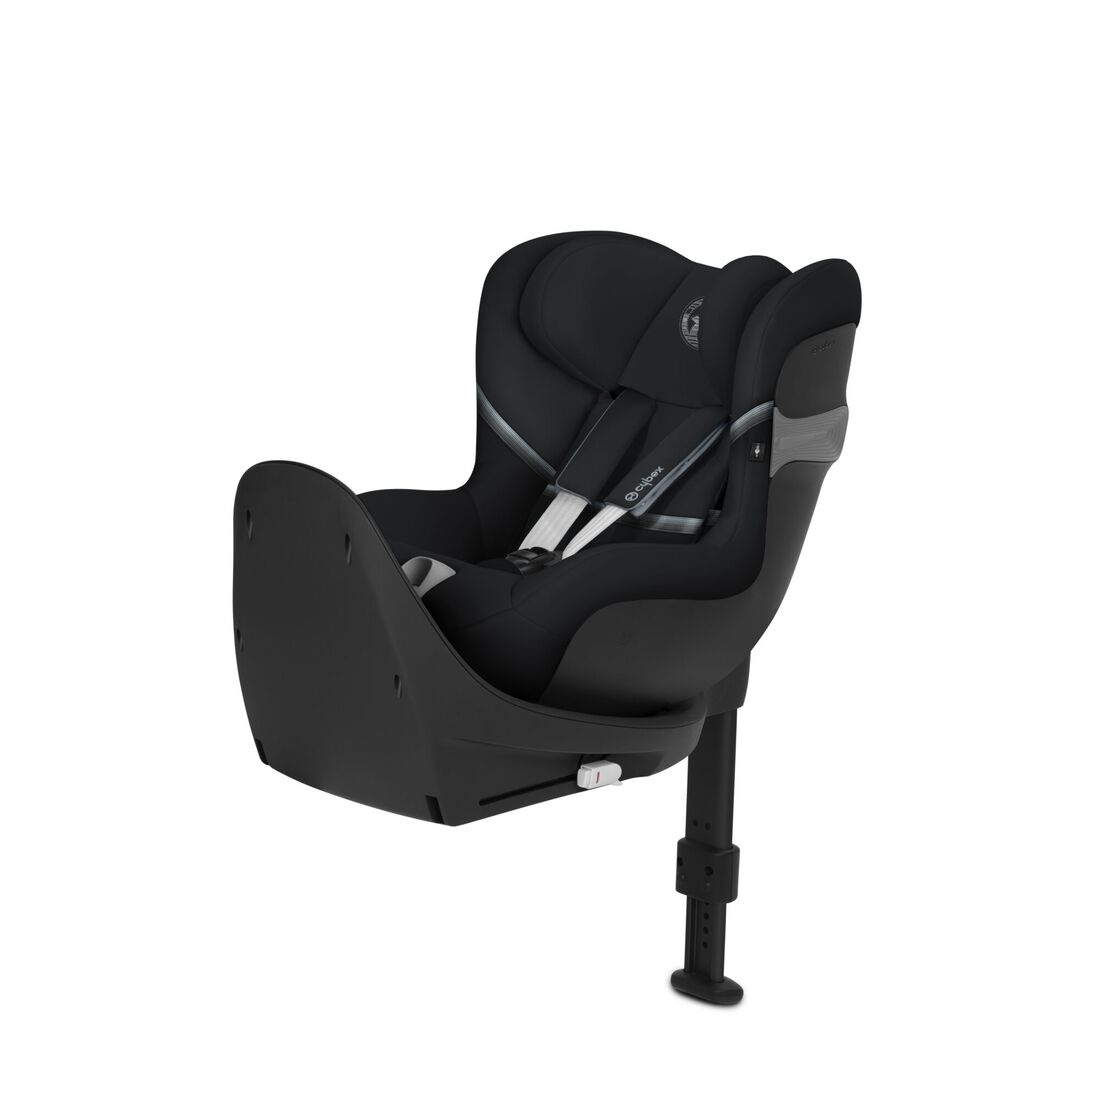 CYBEX Sirona S2 i-Size - Deep Black in Deep Black large image number 1